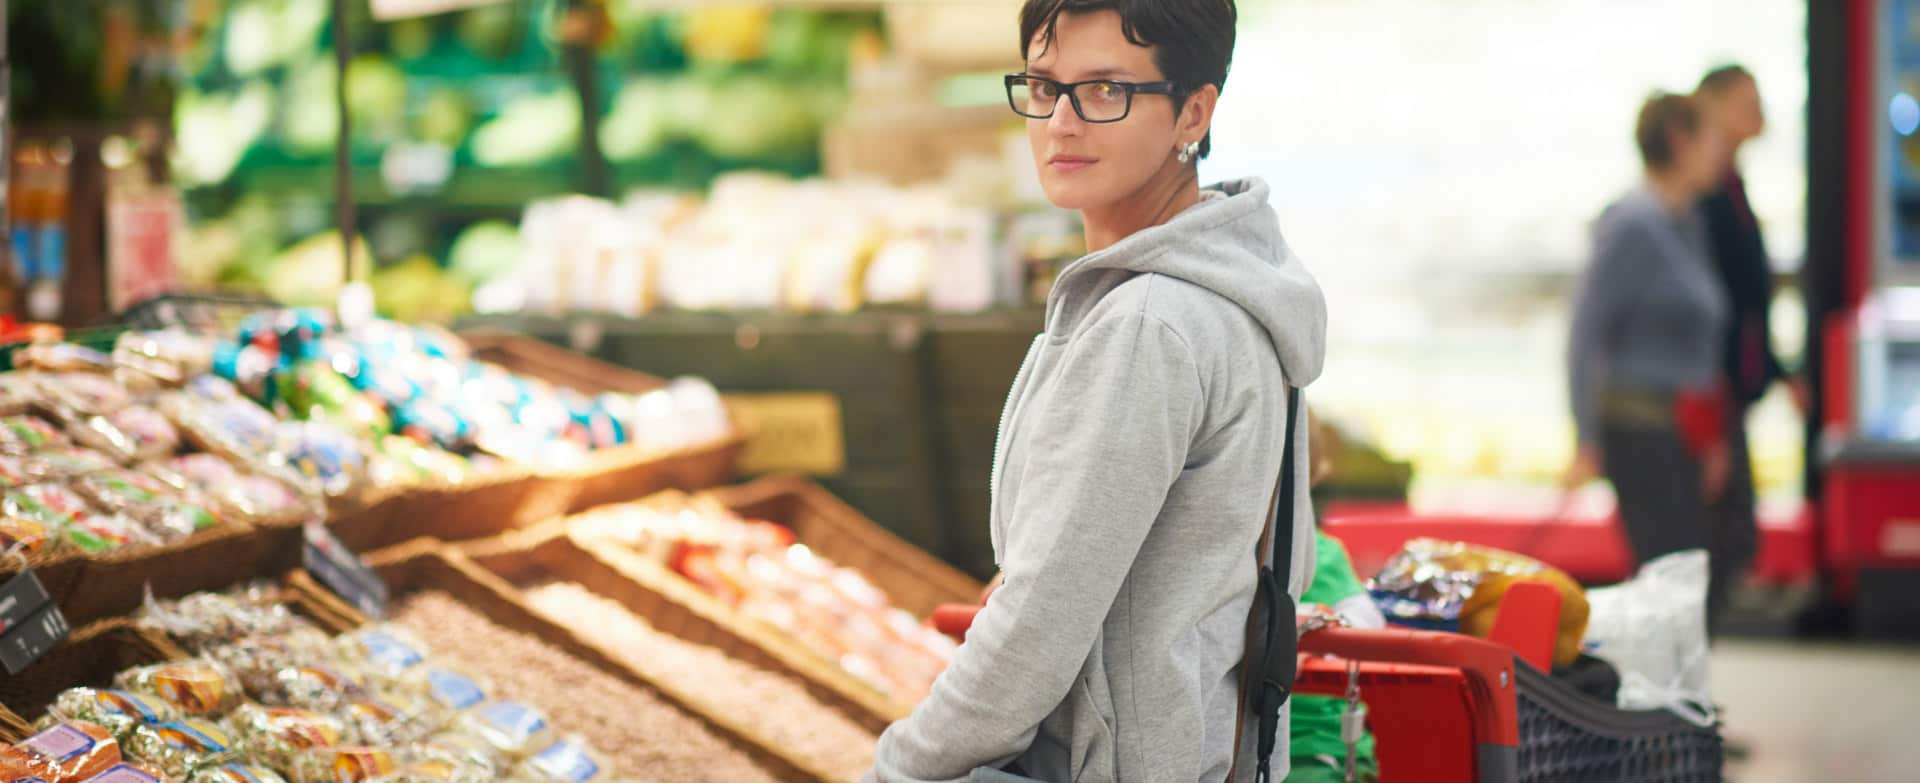 woman standing in front of produce at grocery store